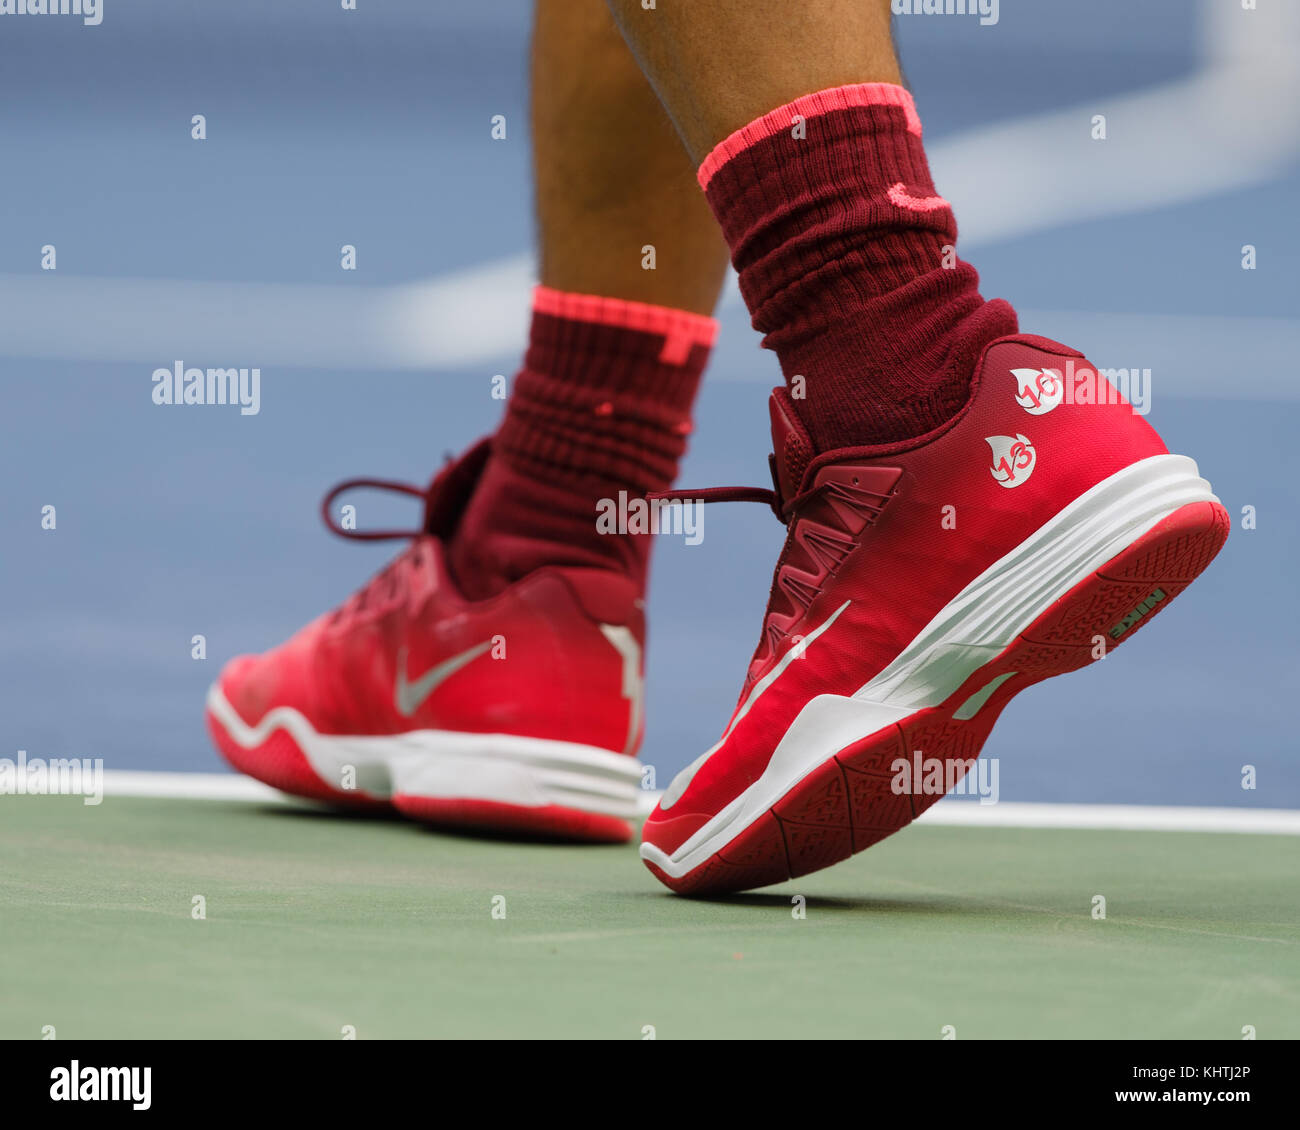 Close up shot of Spanish tennis player Rafael Nadal sports shoe during his men's singles match in US Open 2017 - Stock Image